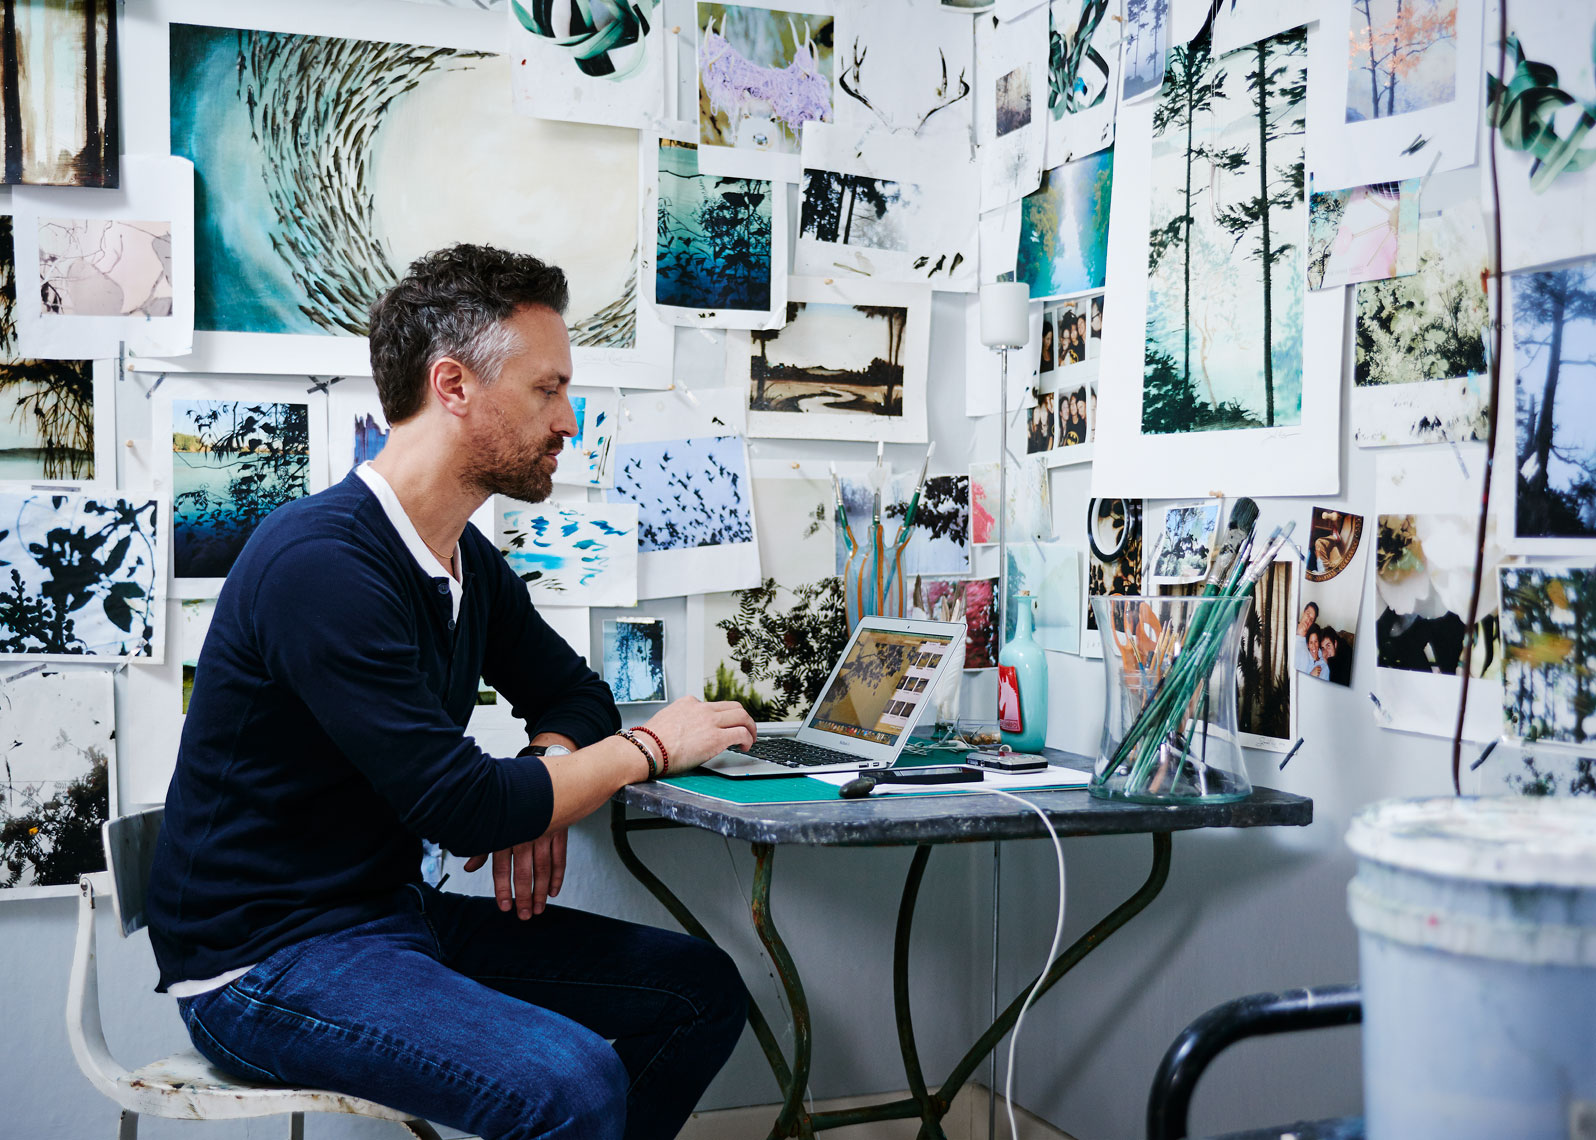 Artist Jared Rue sits at his desk